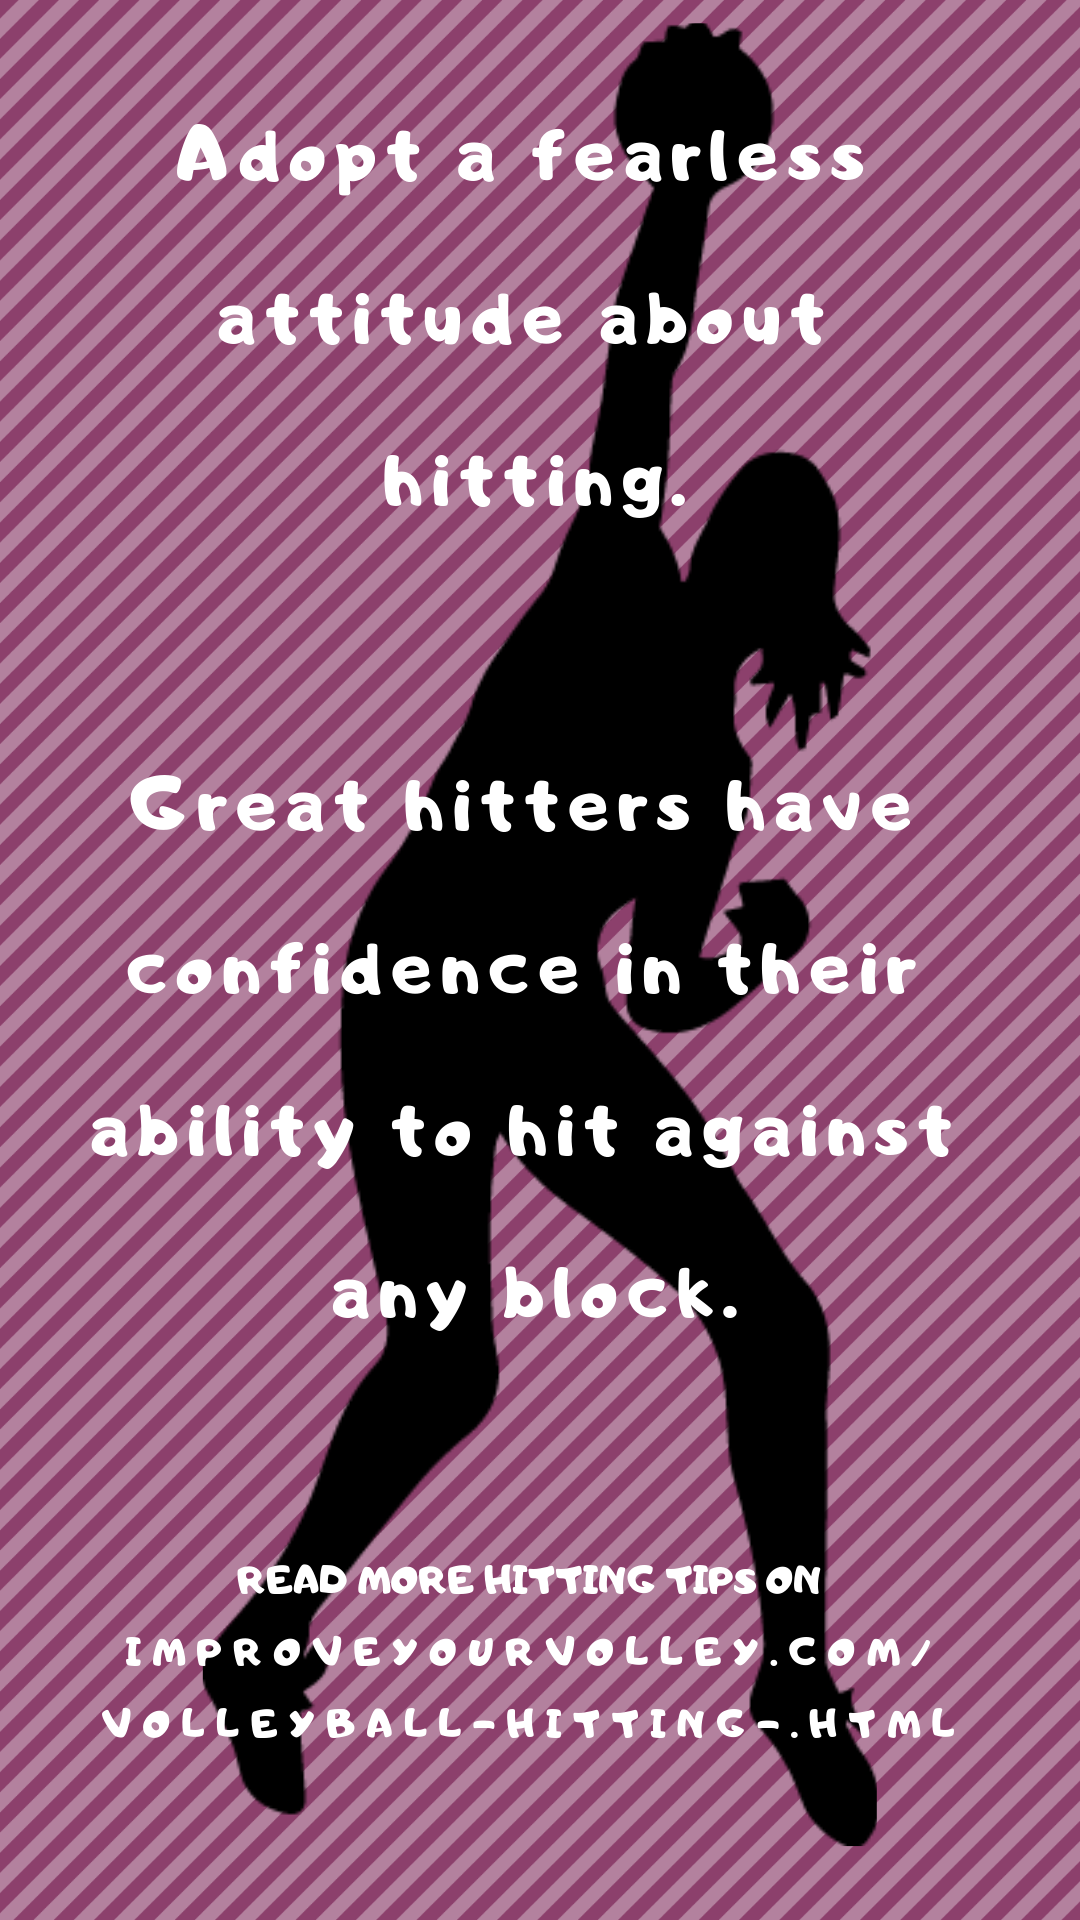 Adopt a fearless attitude about hitting. Great hitters have confidence in their ability to hit against any block.